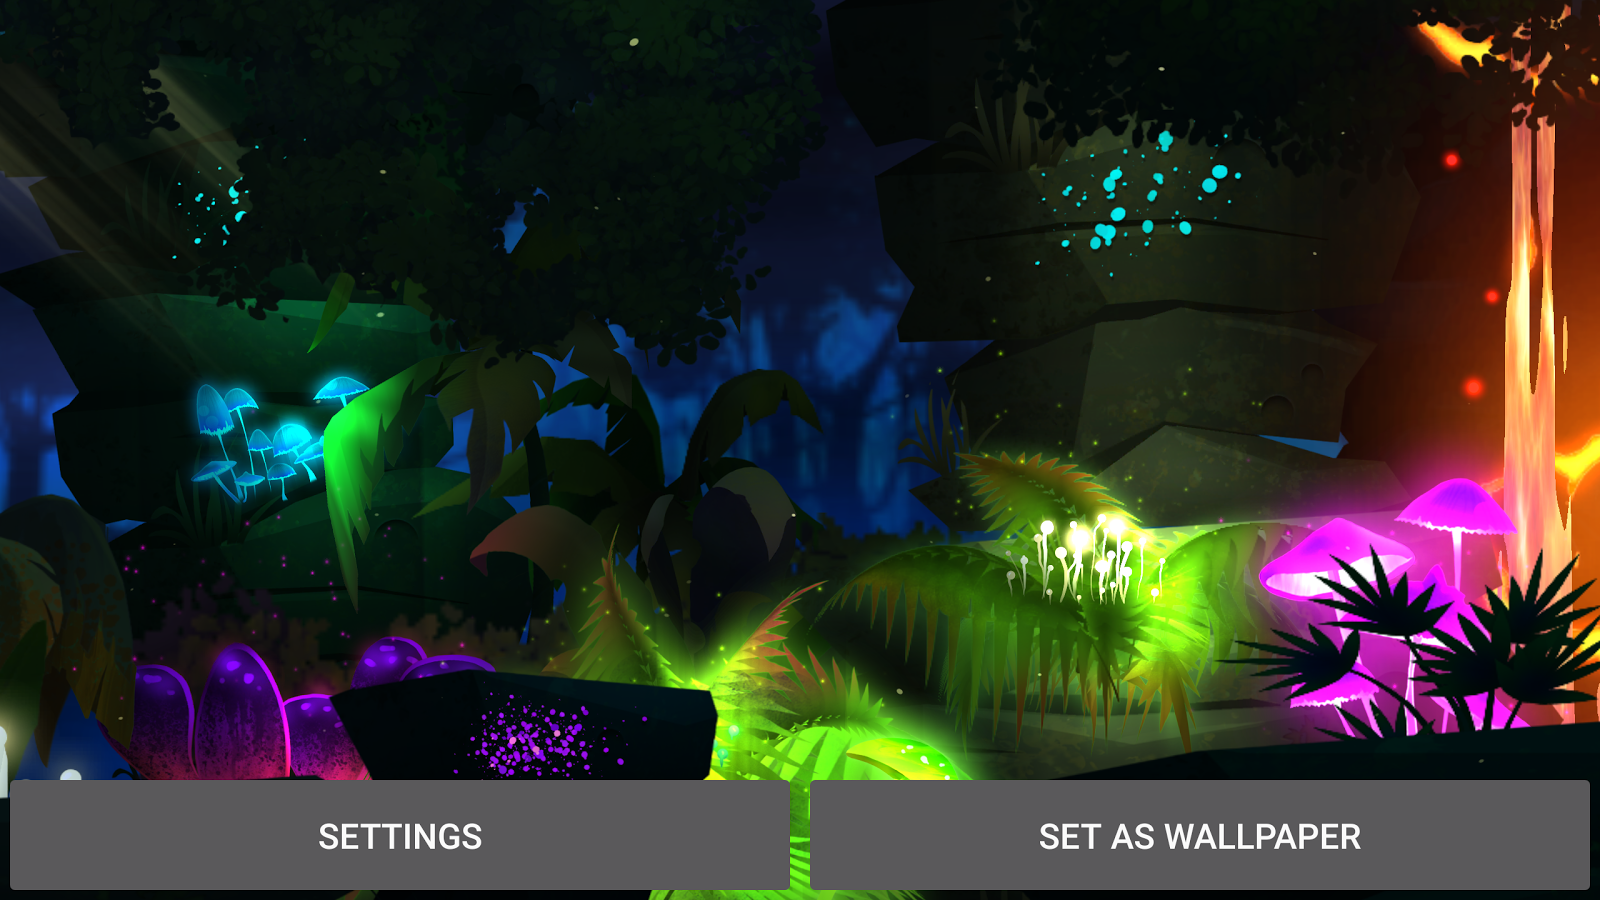 Firefly Jungle Live Wallpaper Screenshot 13